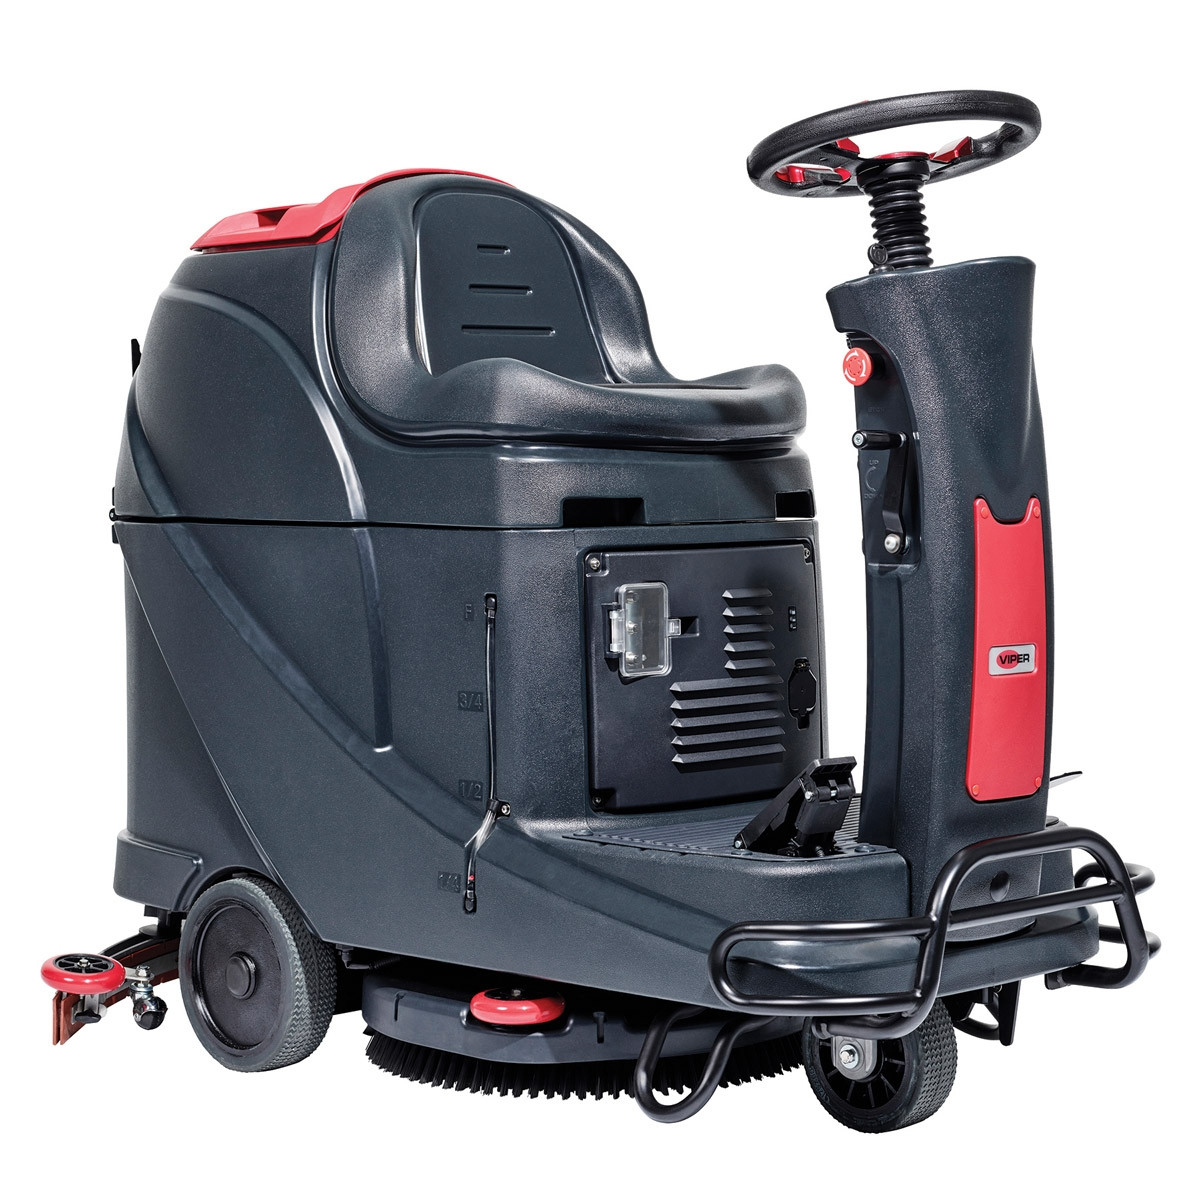 Viper As530r Micro Rider Automatic Floor Scrubber 20